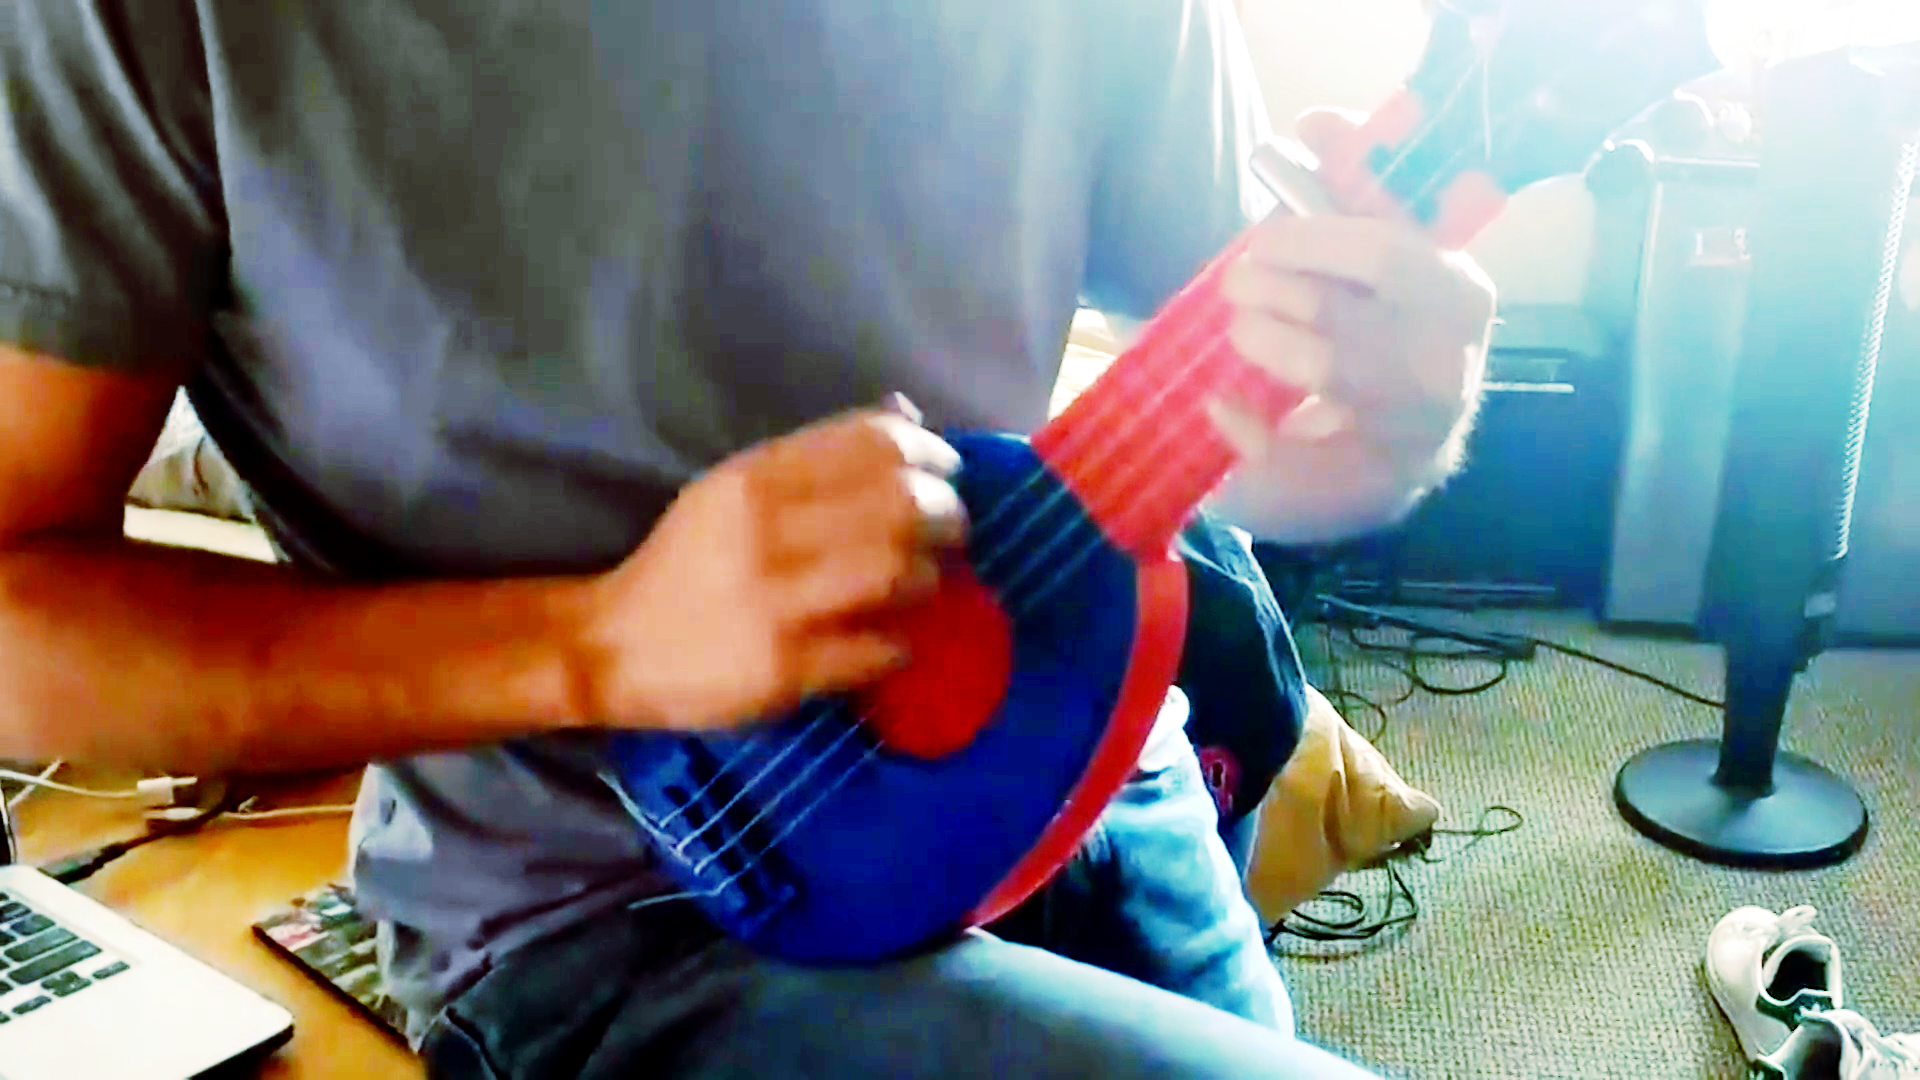 UCLA Students Plan to Educate Kids with 3D Printed Ukuleles | All3DP